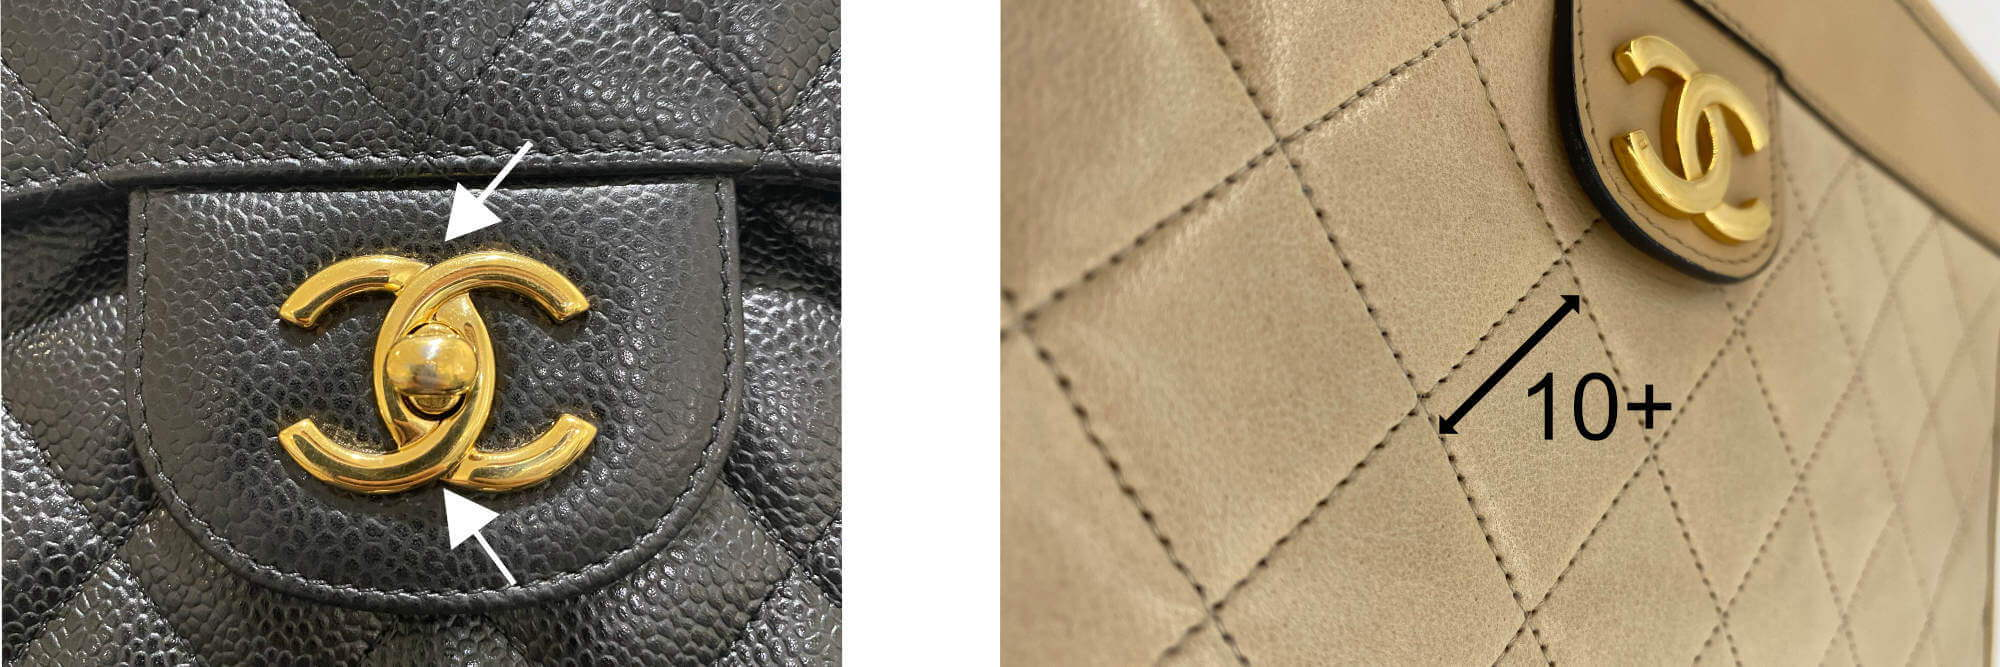 Authentic Chanel hardware and quilting examples